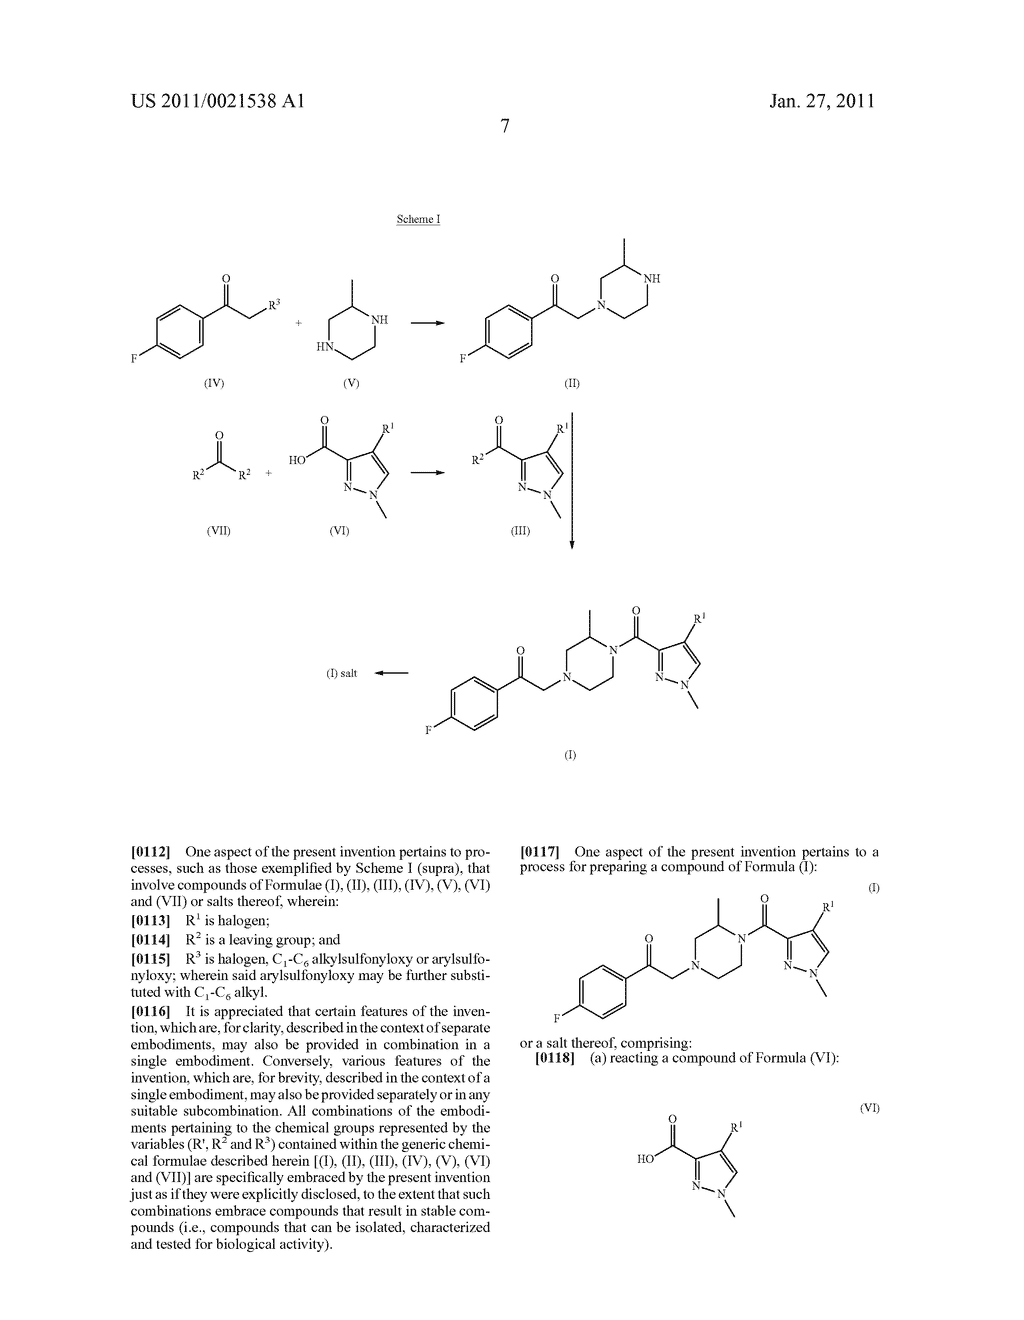 PROCESSES FOR THE PREPARATION OF PYRAZOLE DERIVATIVES USEFUL AS MODULATORS OF THE 5-HT2A SEROTONIN RECEPTOR - diagram, schematic, and image 08